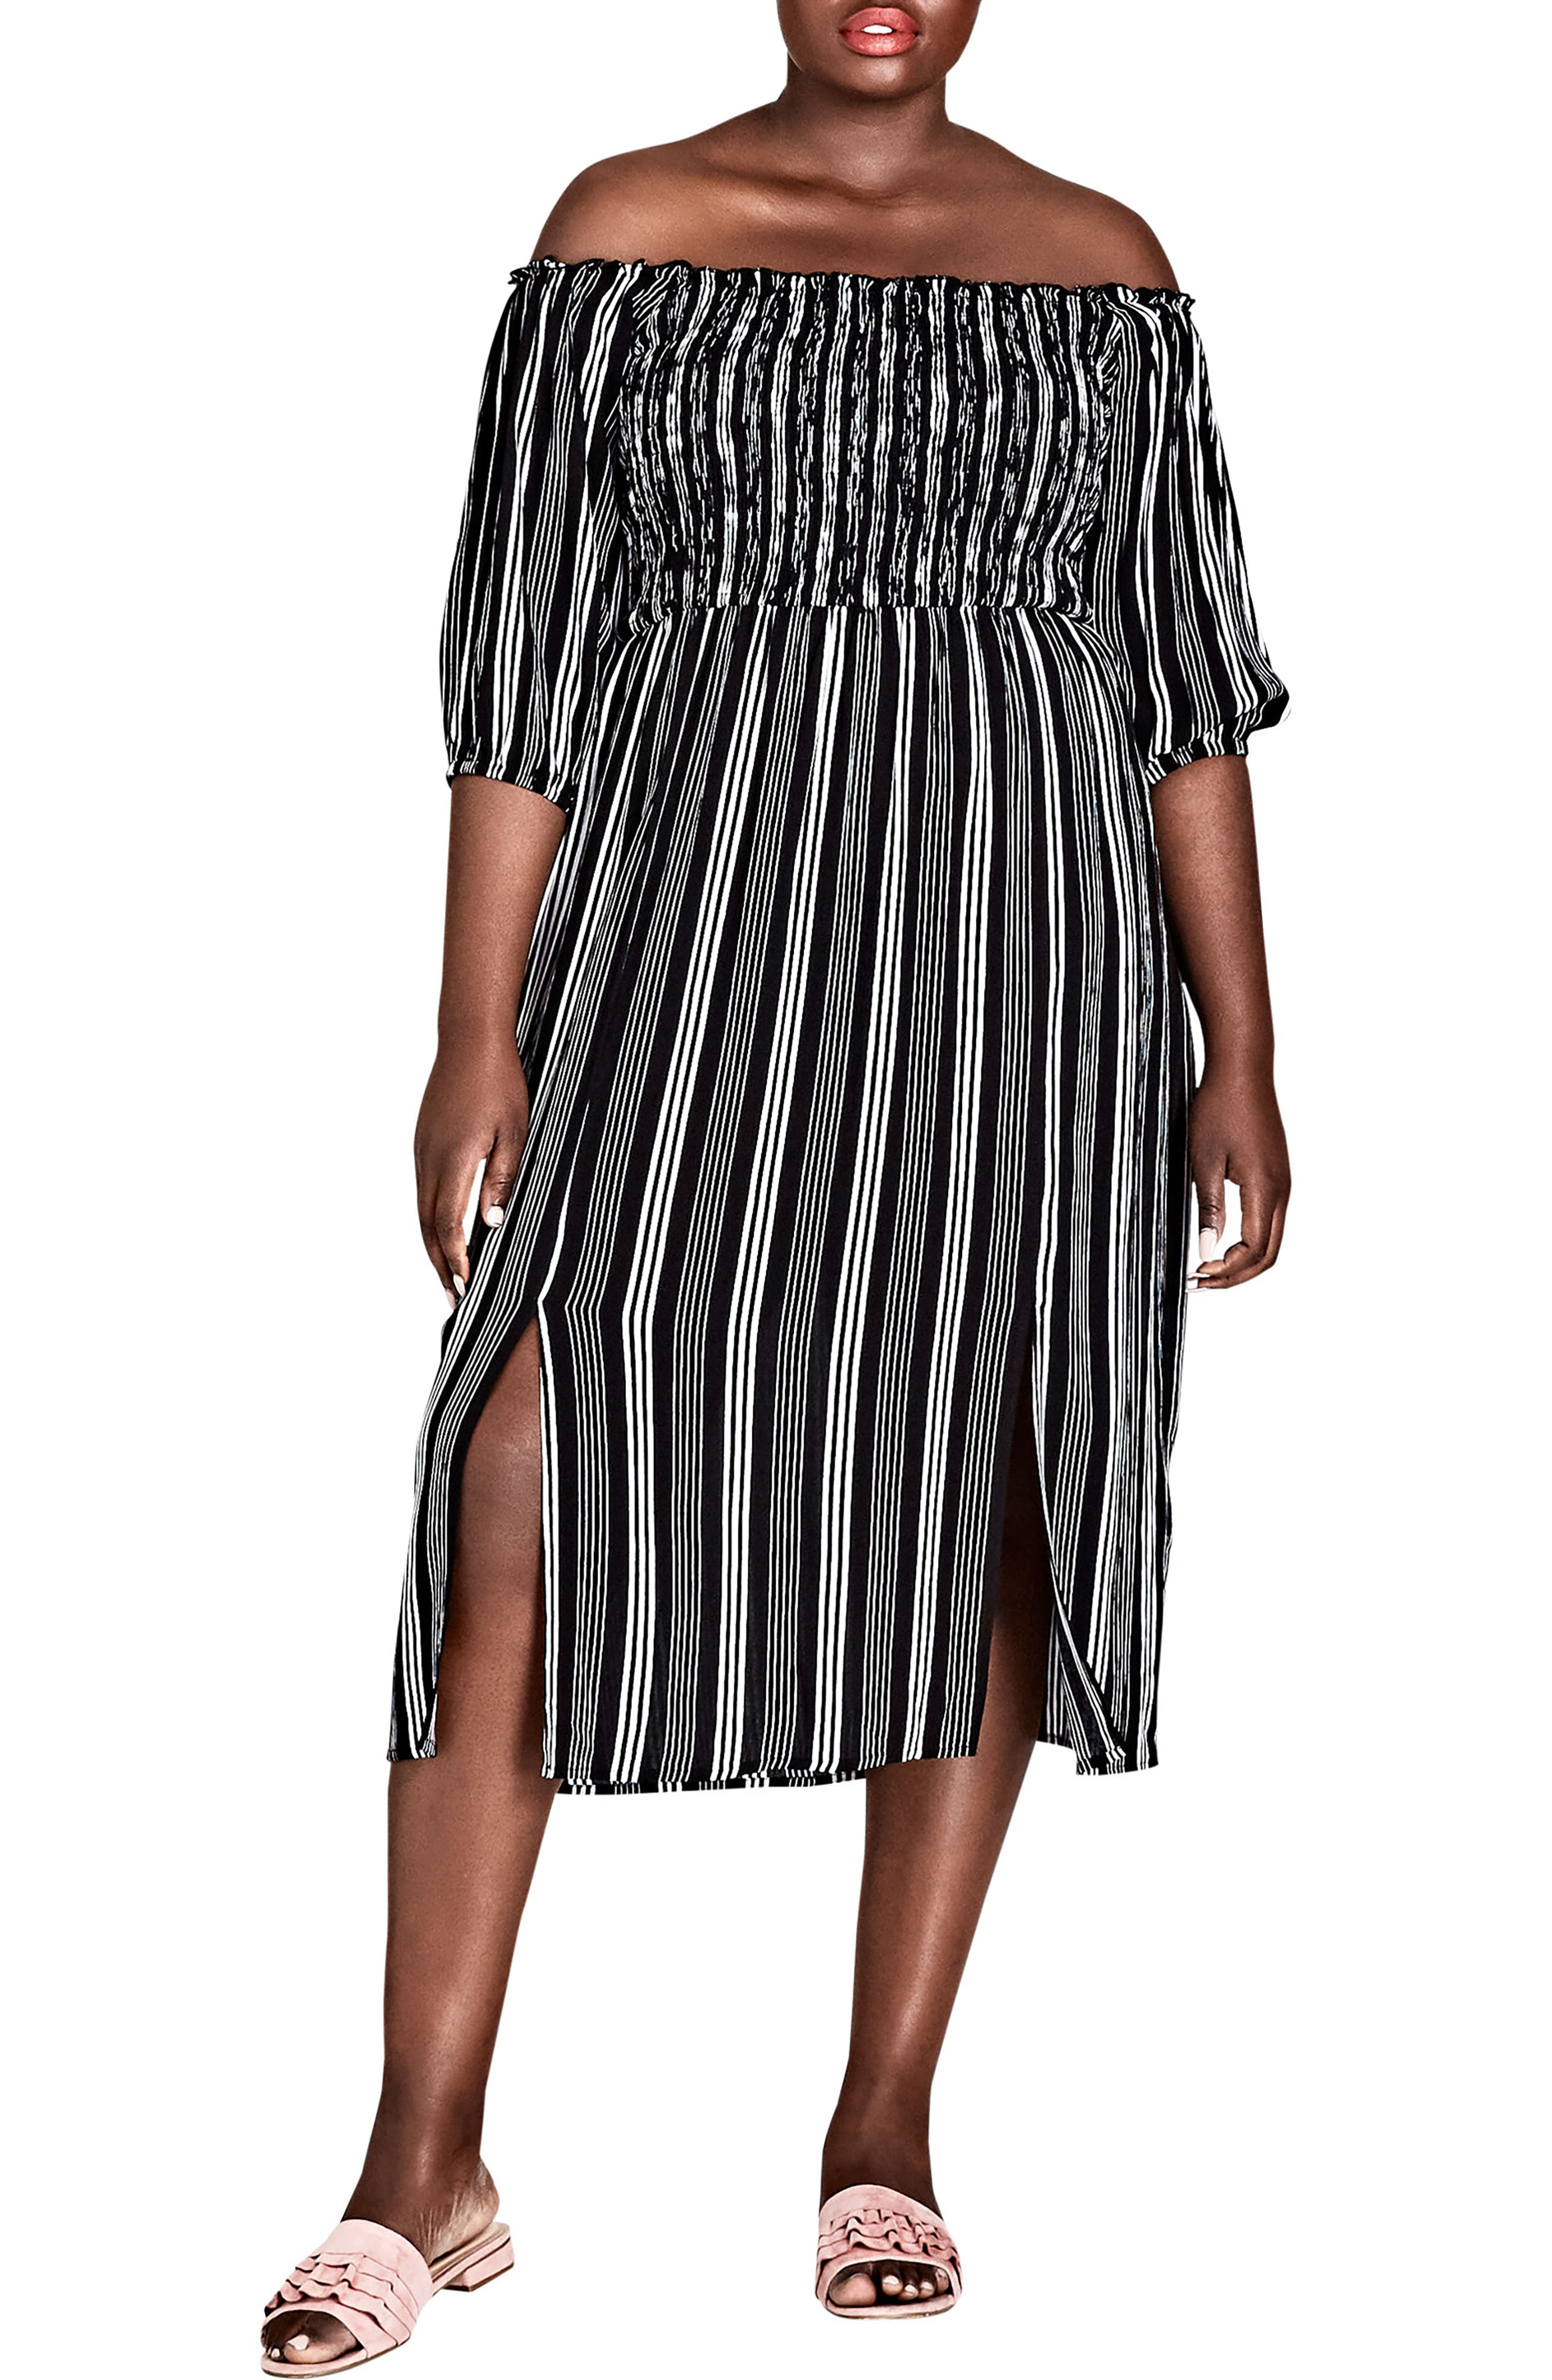 Stripe Play Off the Shoulder Midi Dress,                             Main thumbnail 1, color,                             Stripe Play